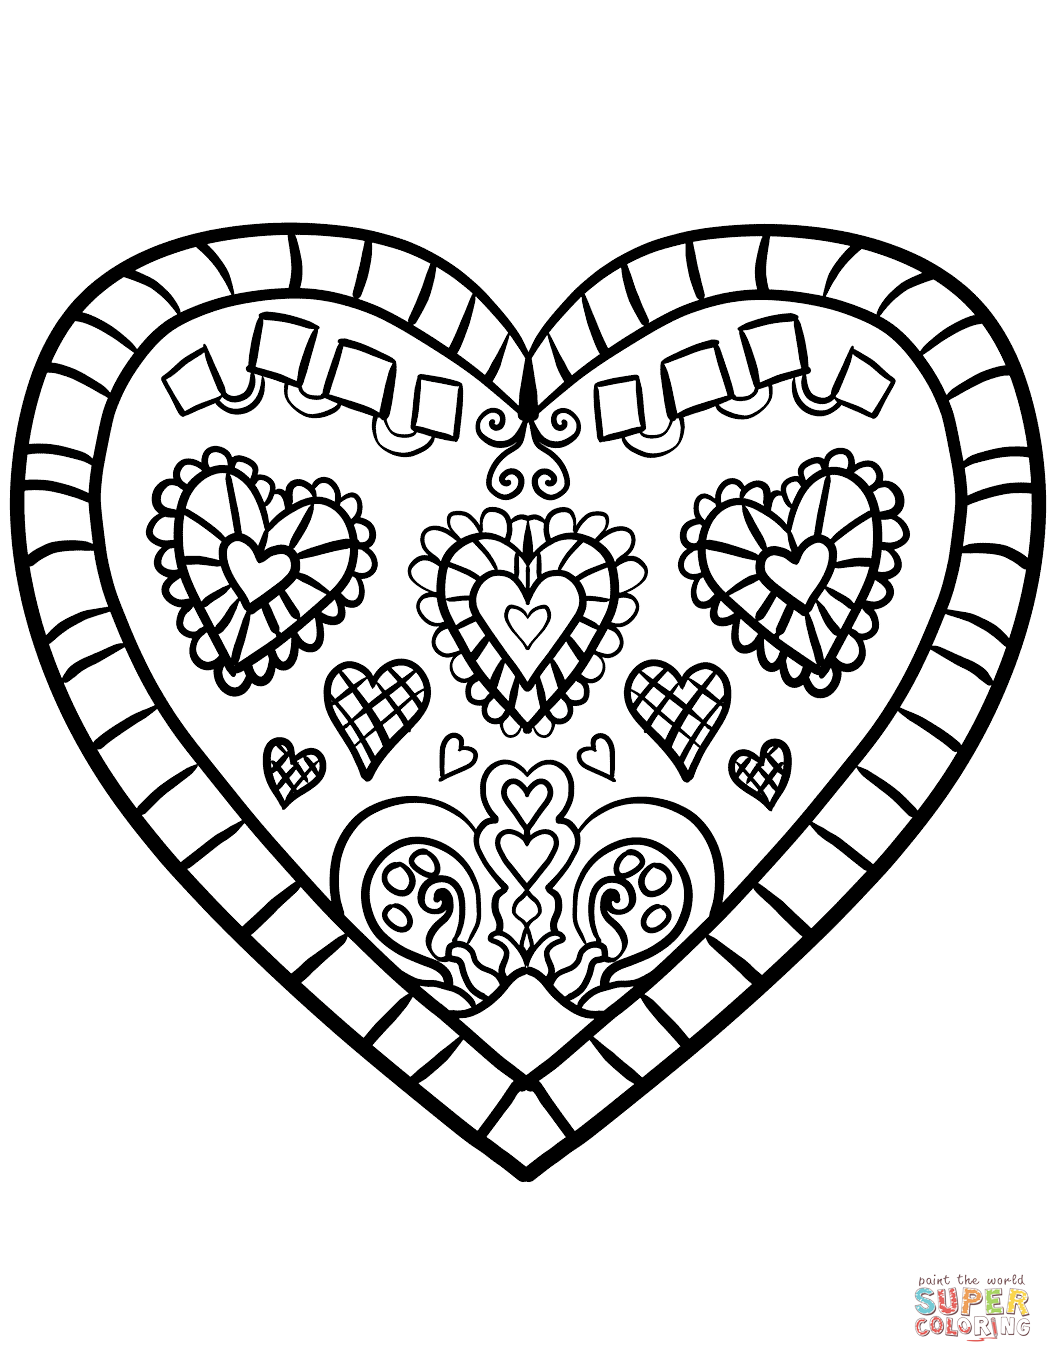 Valentines Hearts Free Printable Coloring Pages Zentangle Blank Decorated Heart